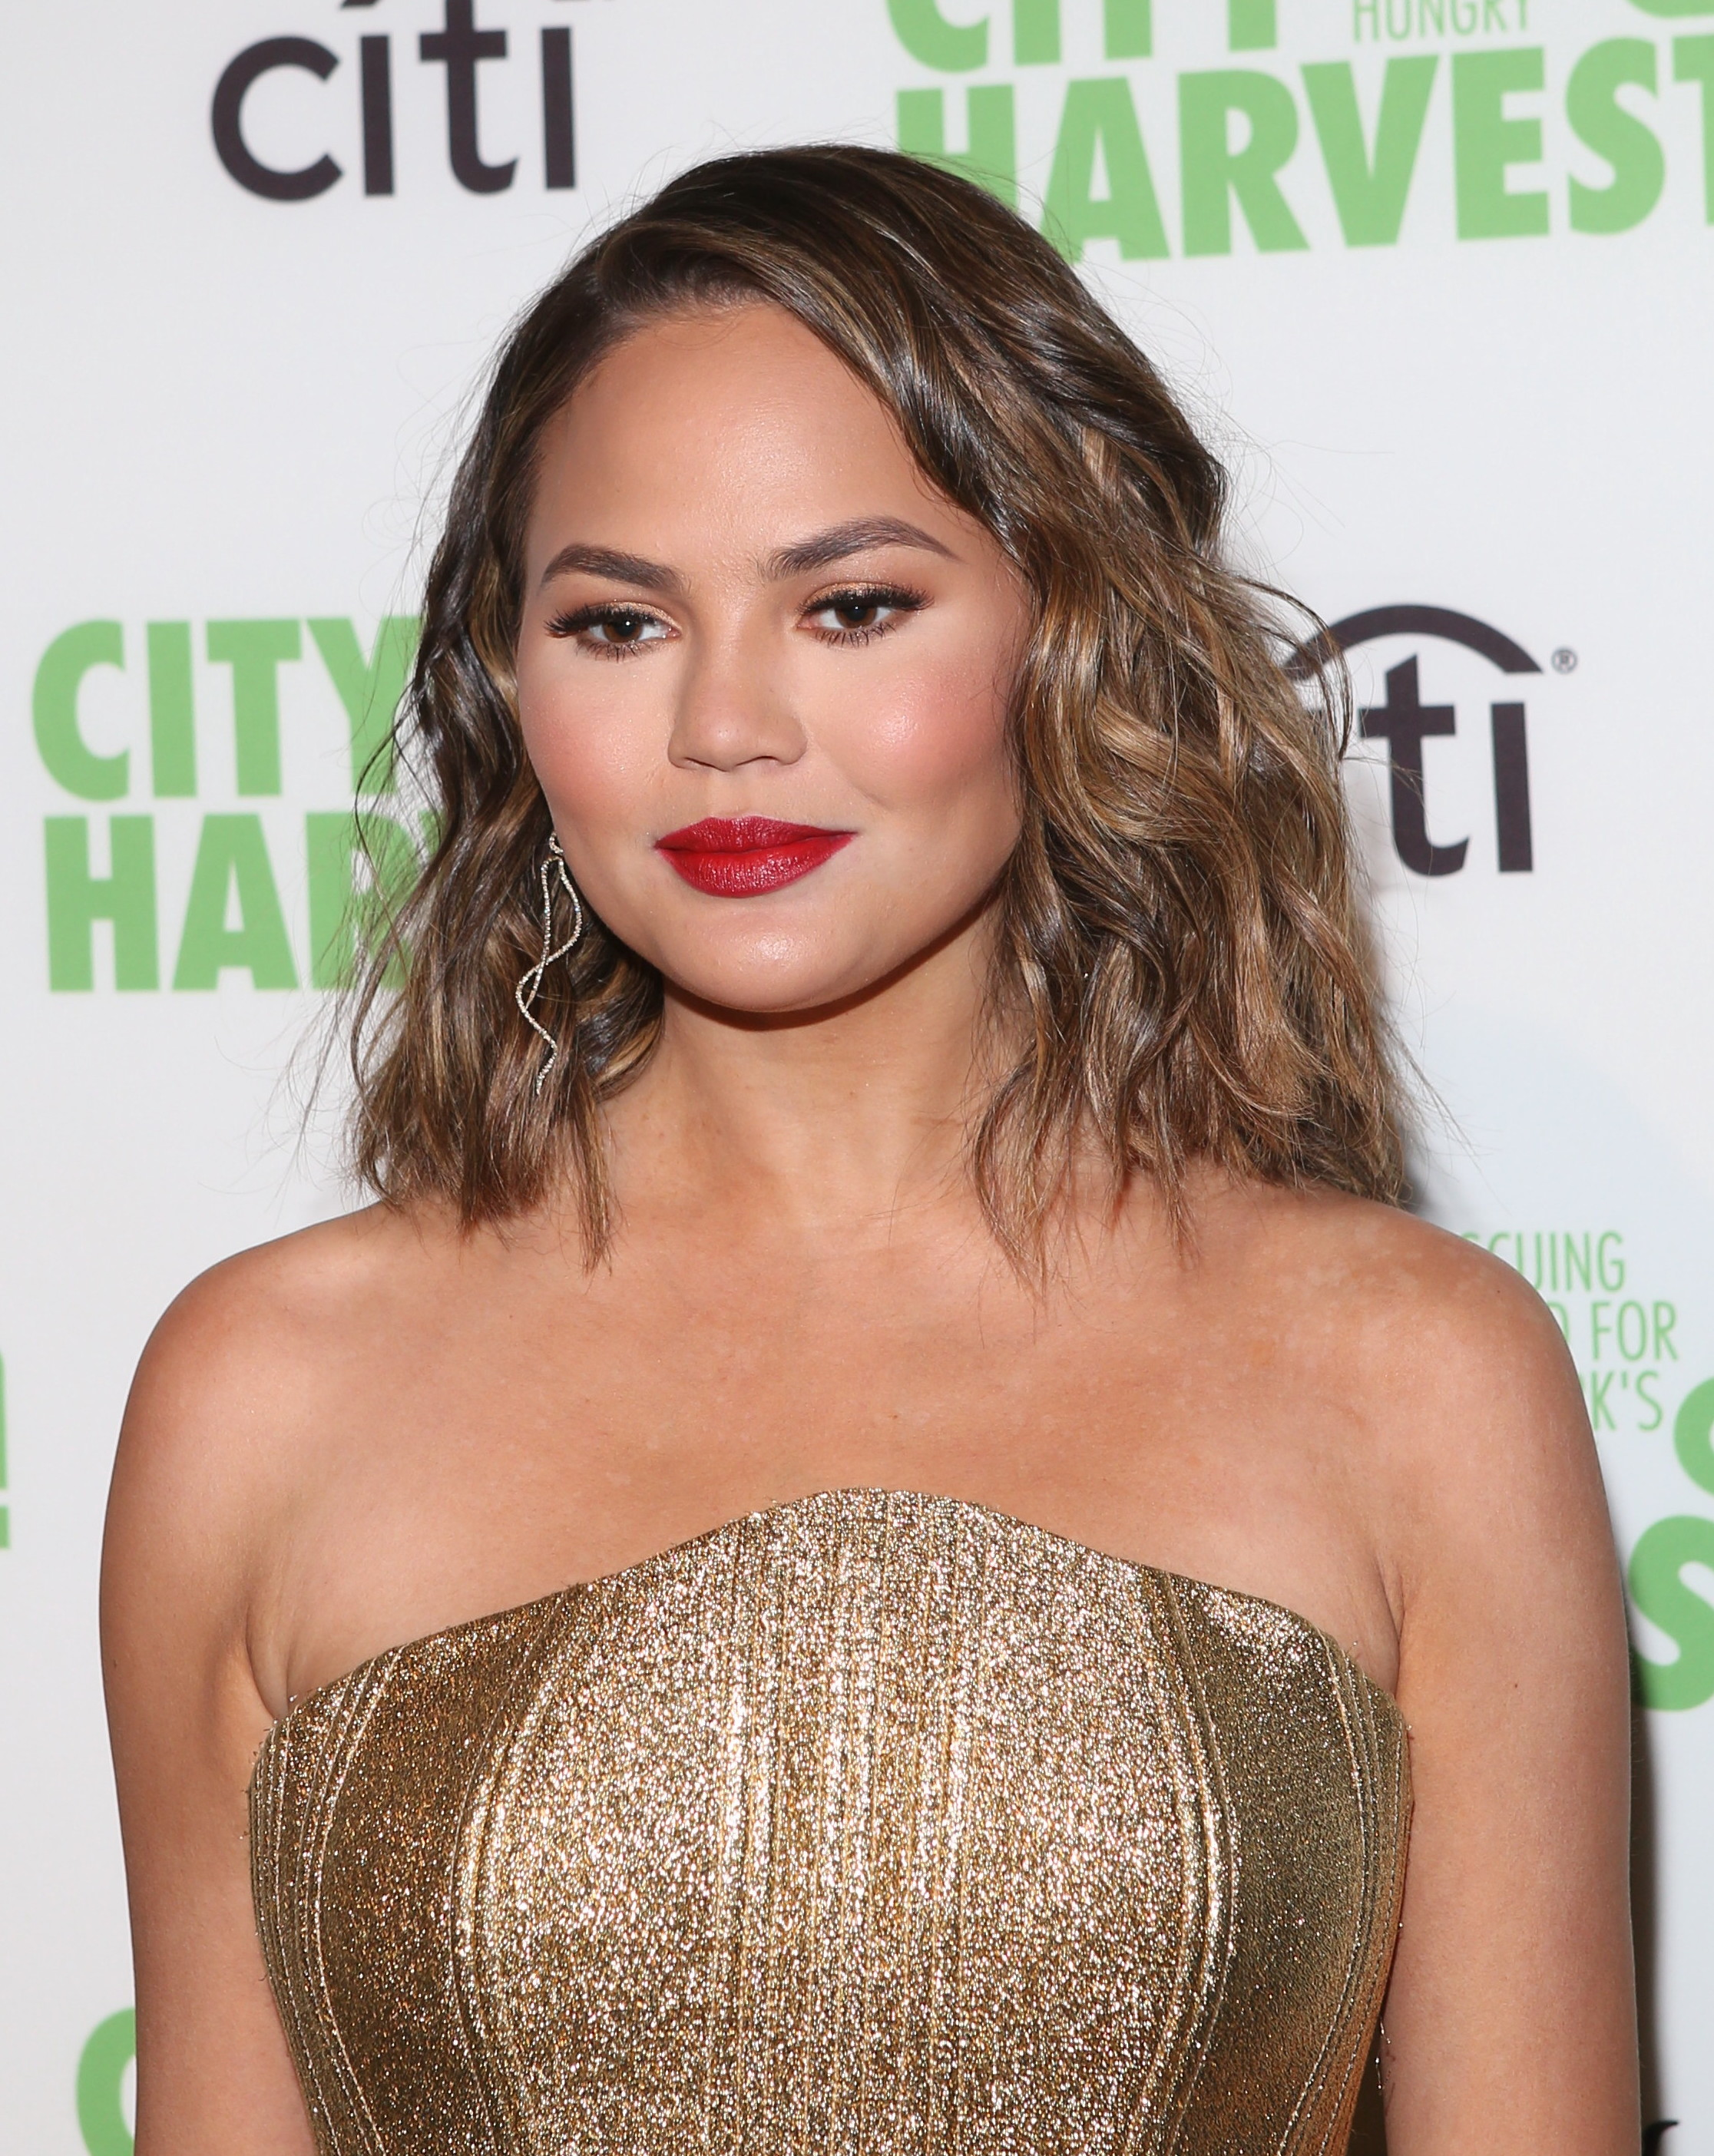 Chrissy Teigen among the Celebrities attending City Harvest's 23rd Annual Gala at Cipriani 42nd New York, New York, United States 25 Apr 2017 (Credit: Derrick Salters/WENN.com)